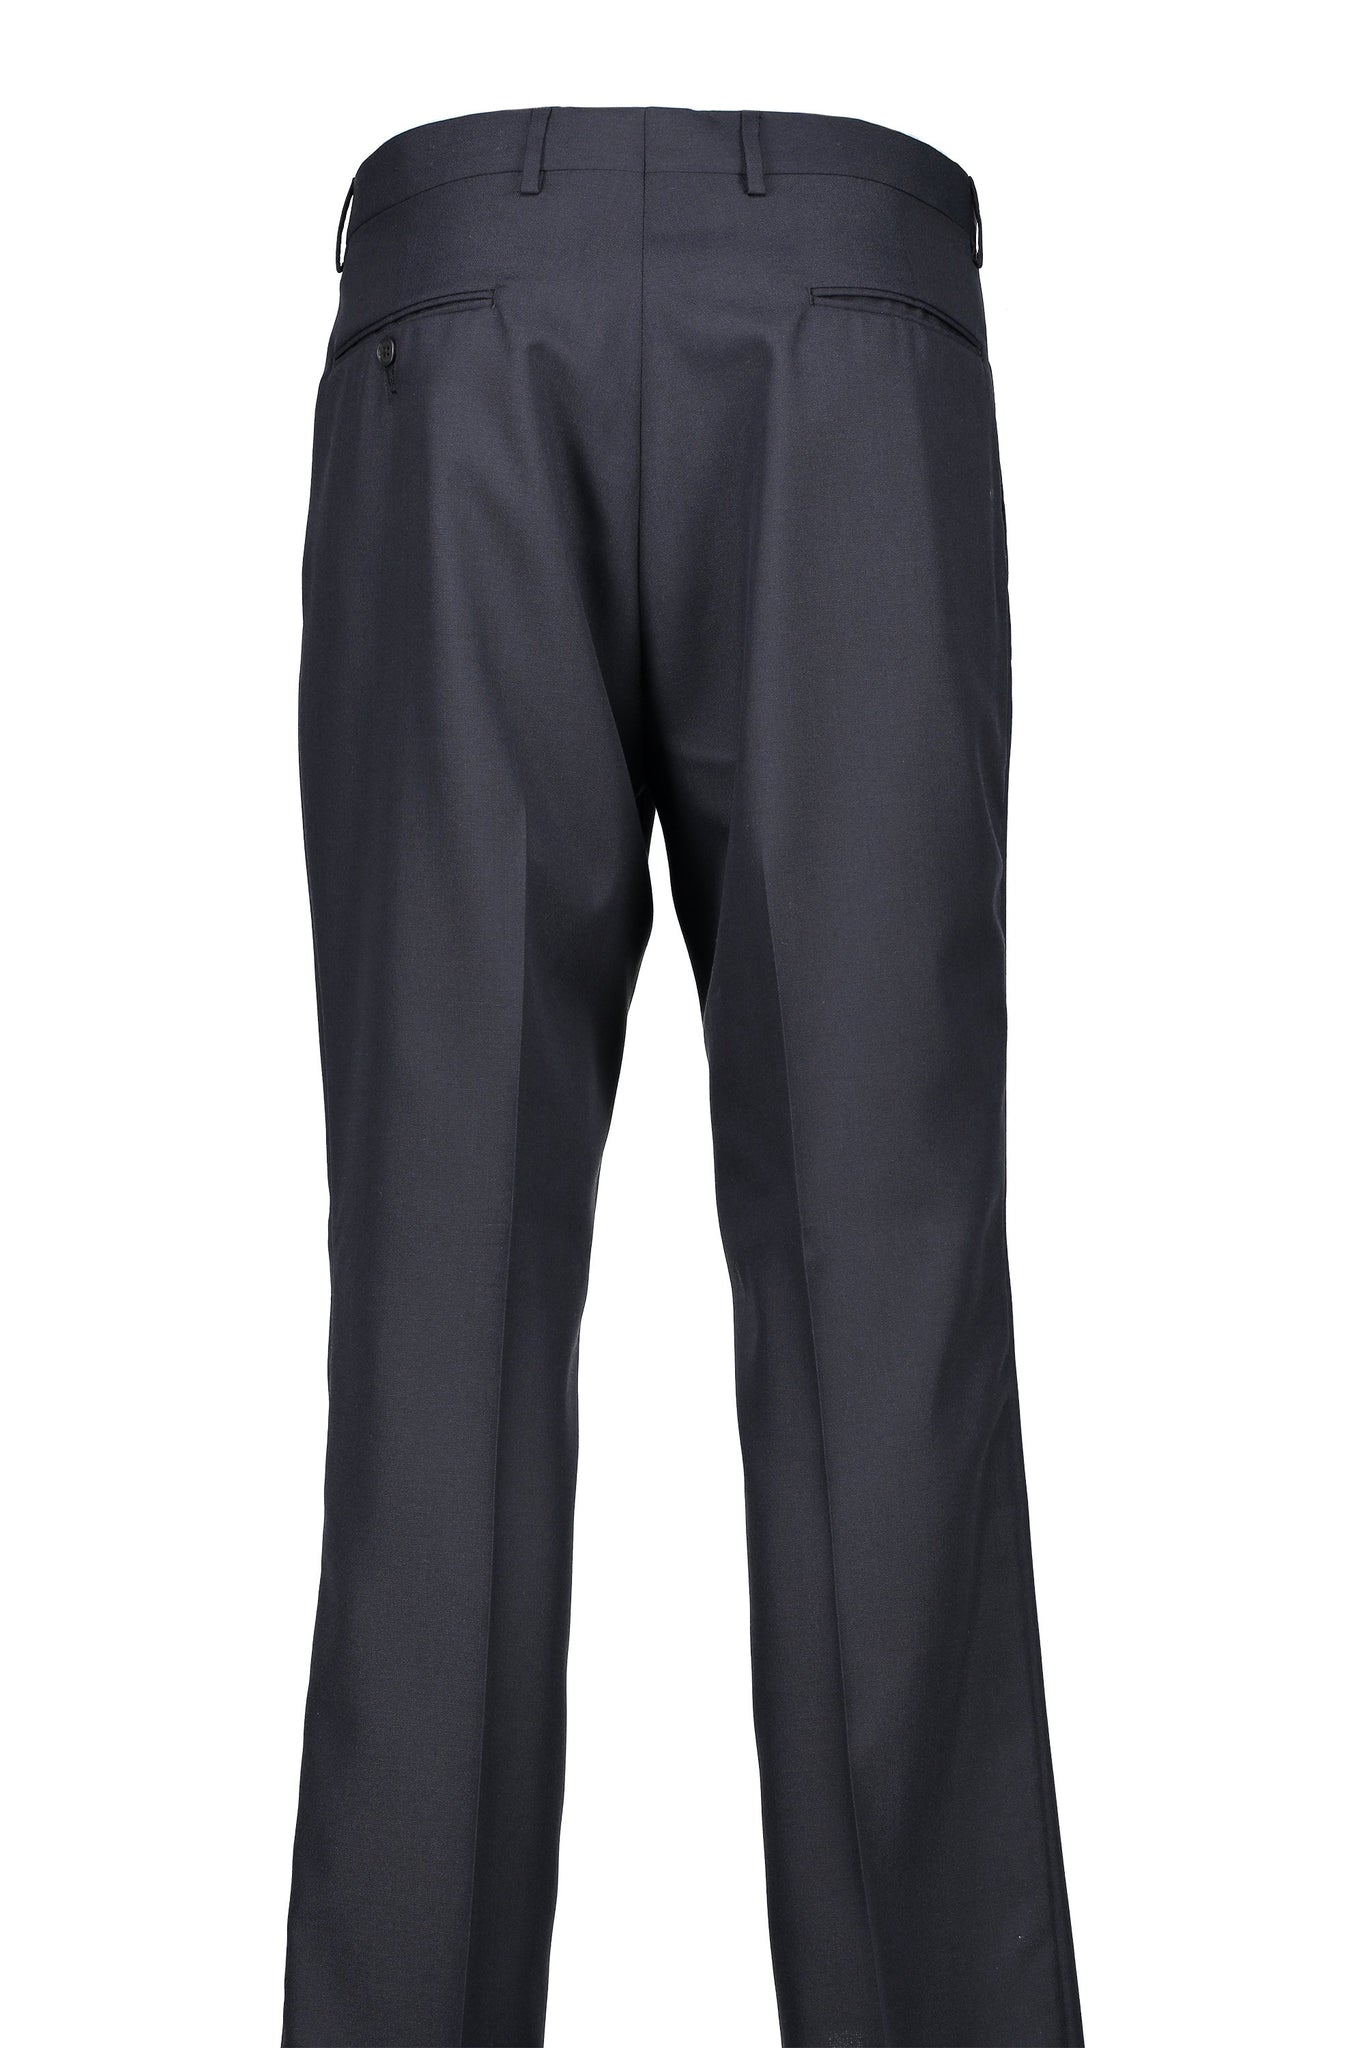 Classic Fit Navy Wool Traveler Suit Separate Pleated Pant -  Hardwick.com